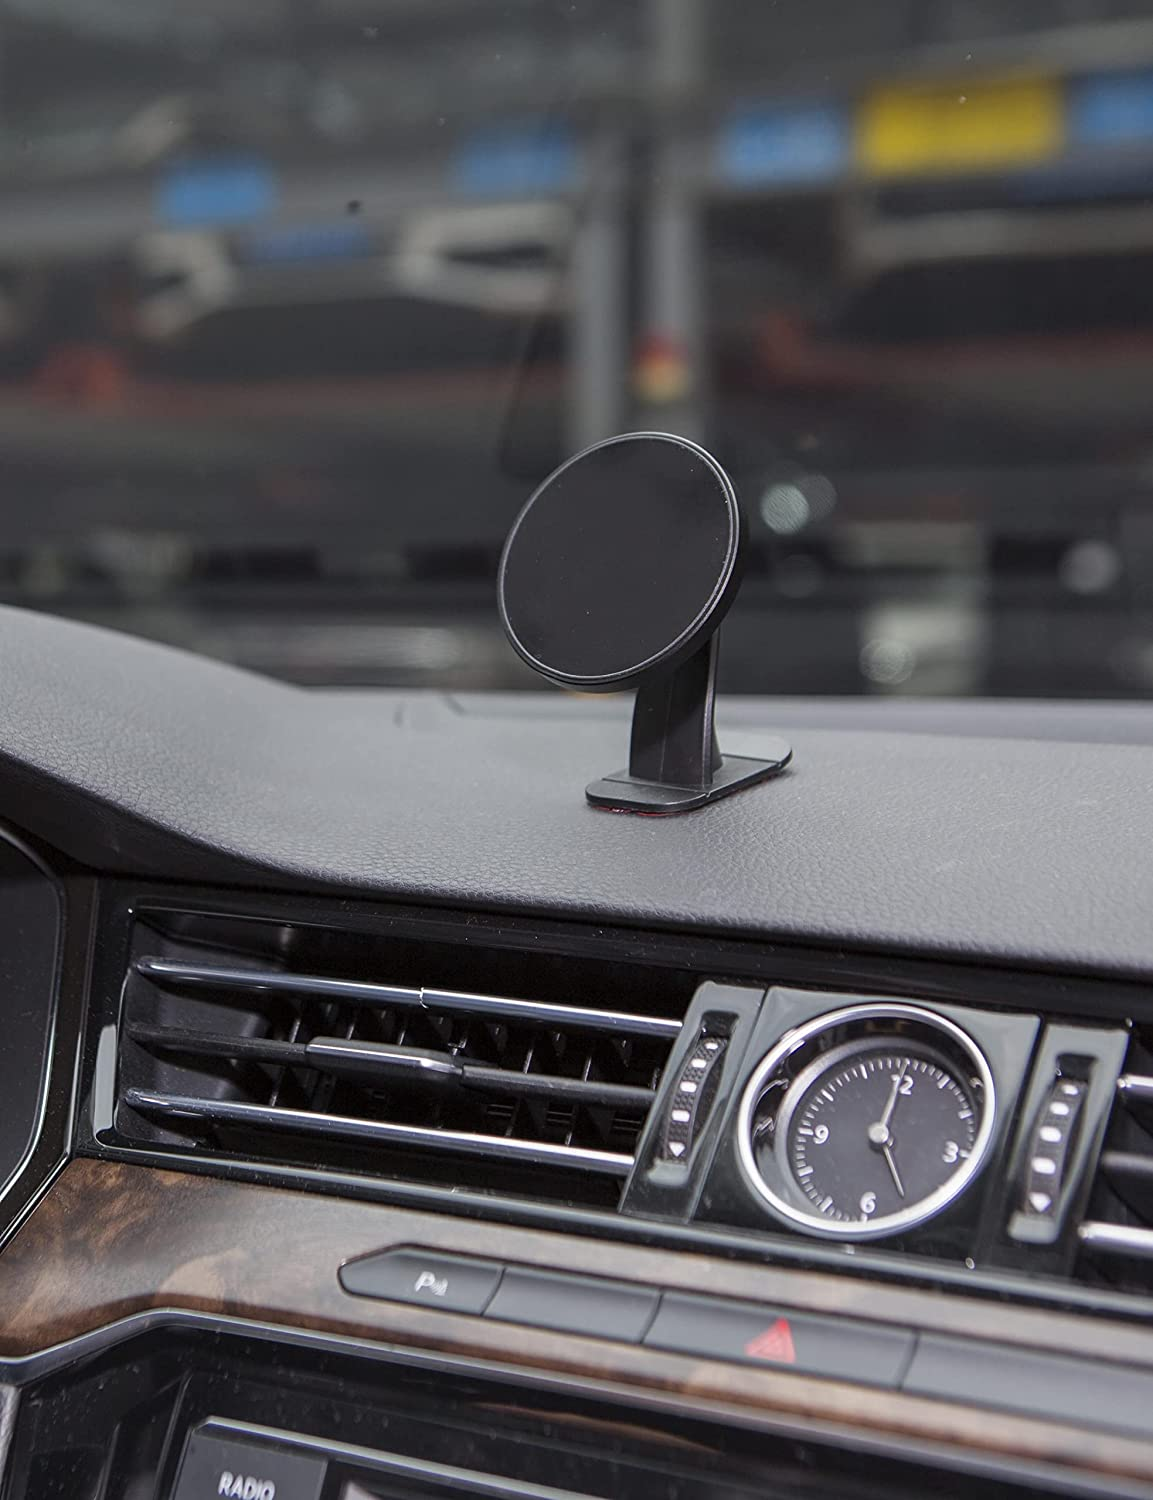 Magnetic Phone Holder for Car, Compatible with iPhone 12/13 Series and Magsafe Product, Using on Dashboard and Vent